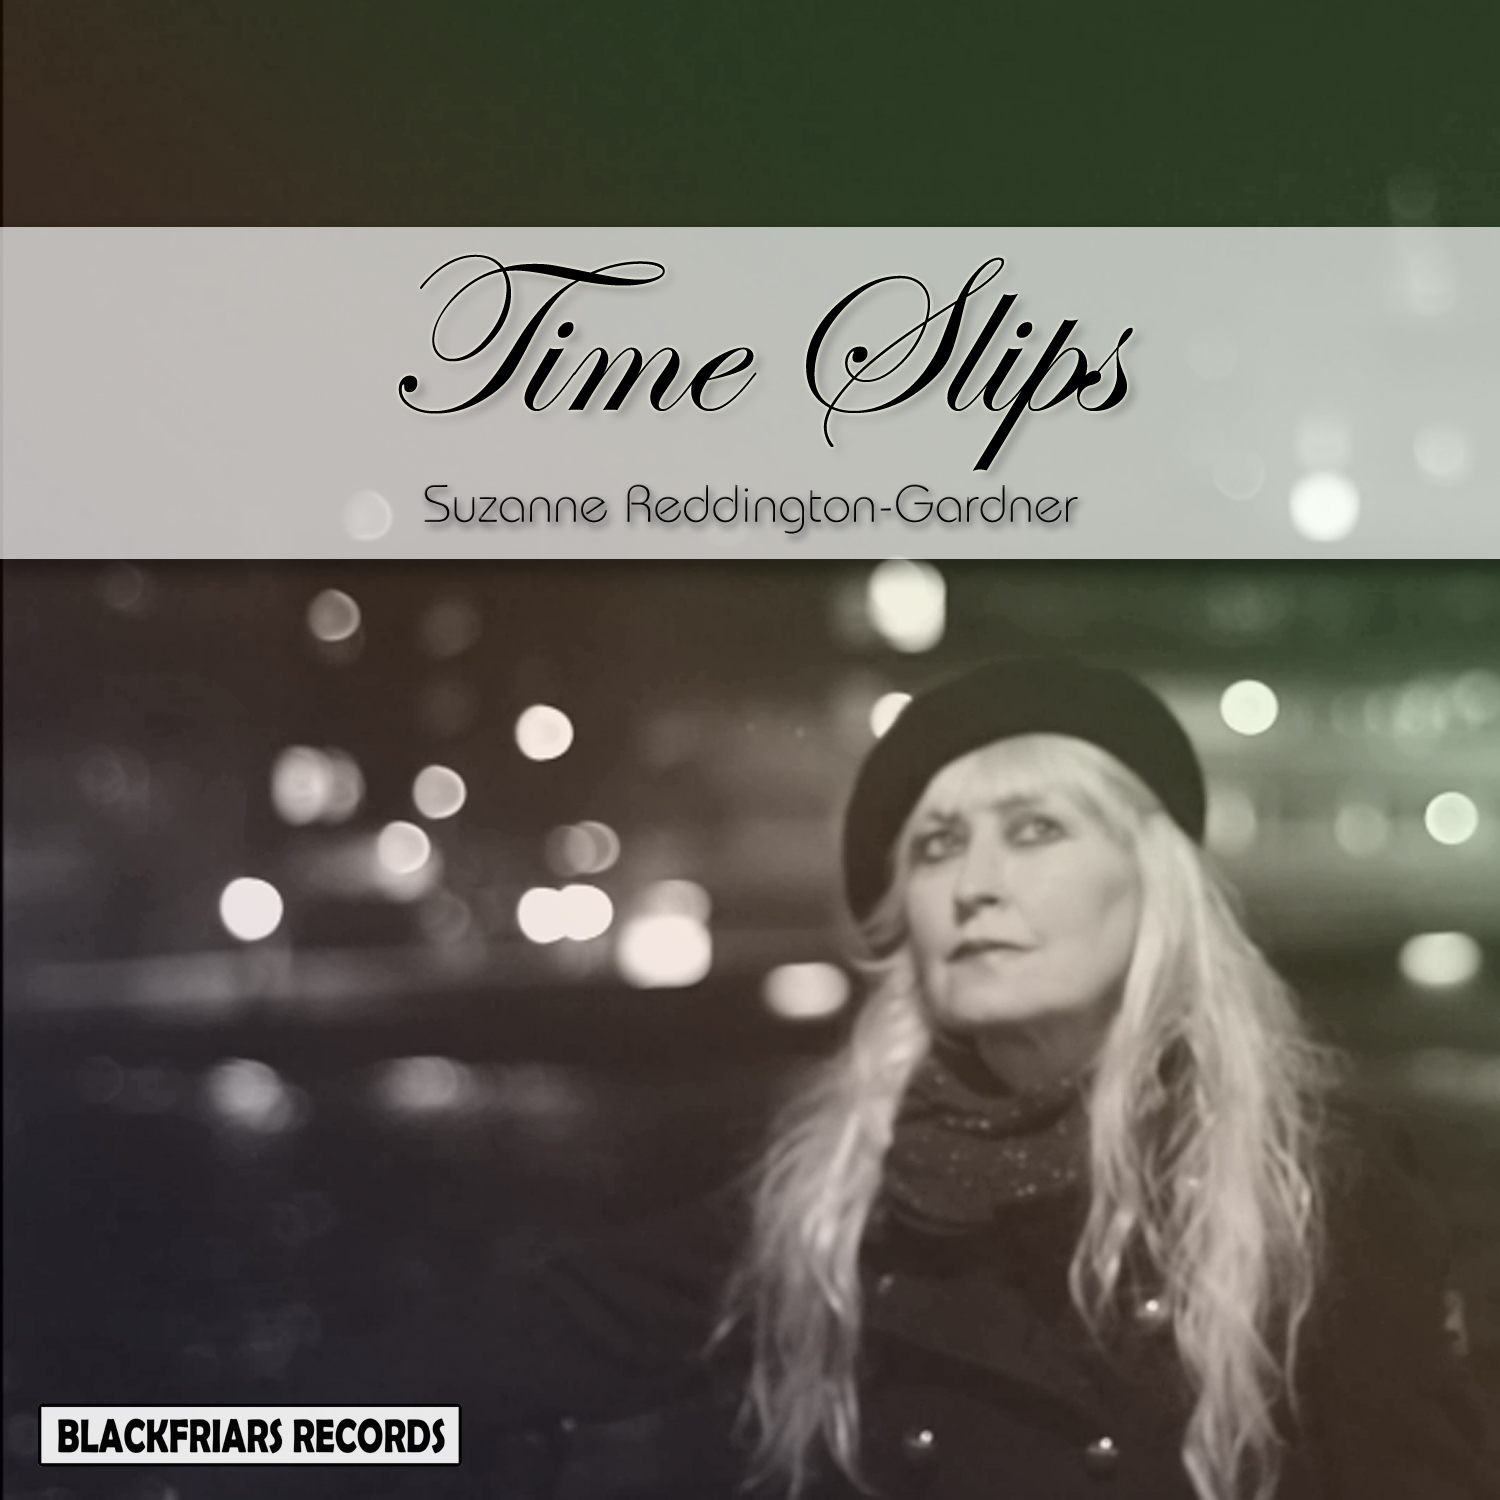 Suzanne Reddington-Gardner - Time Slips